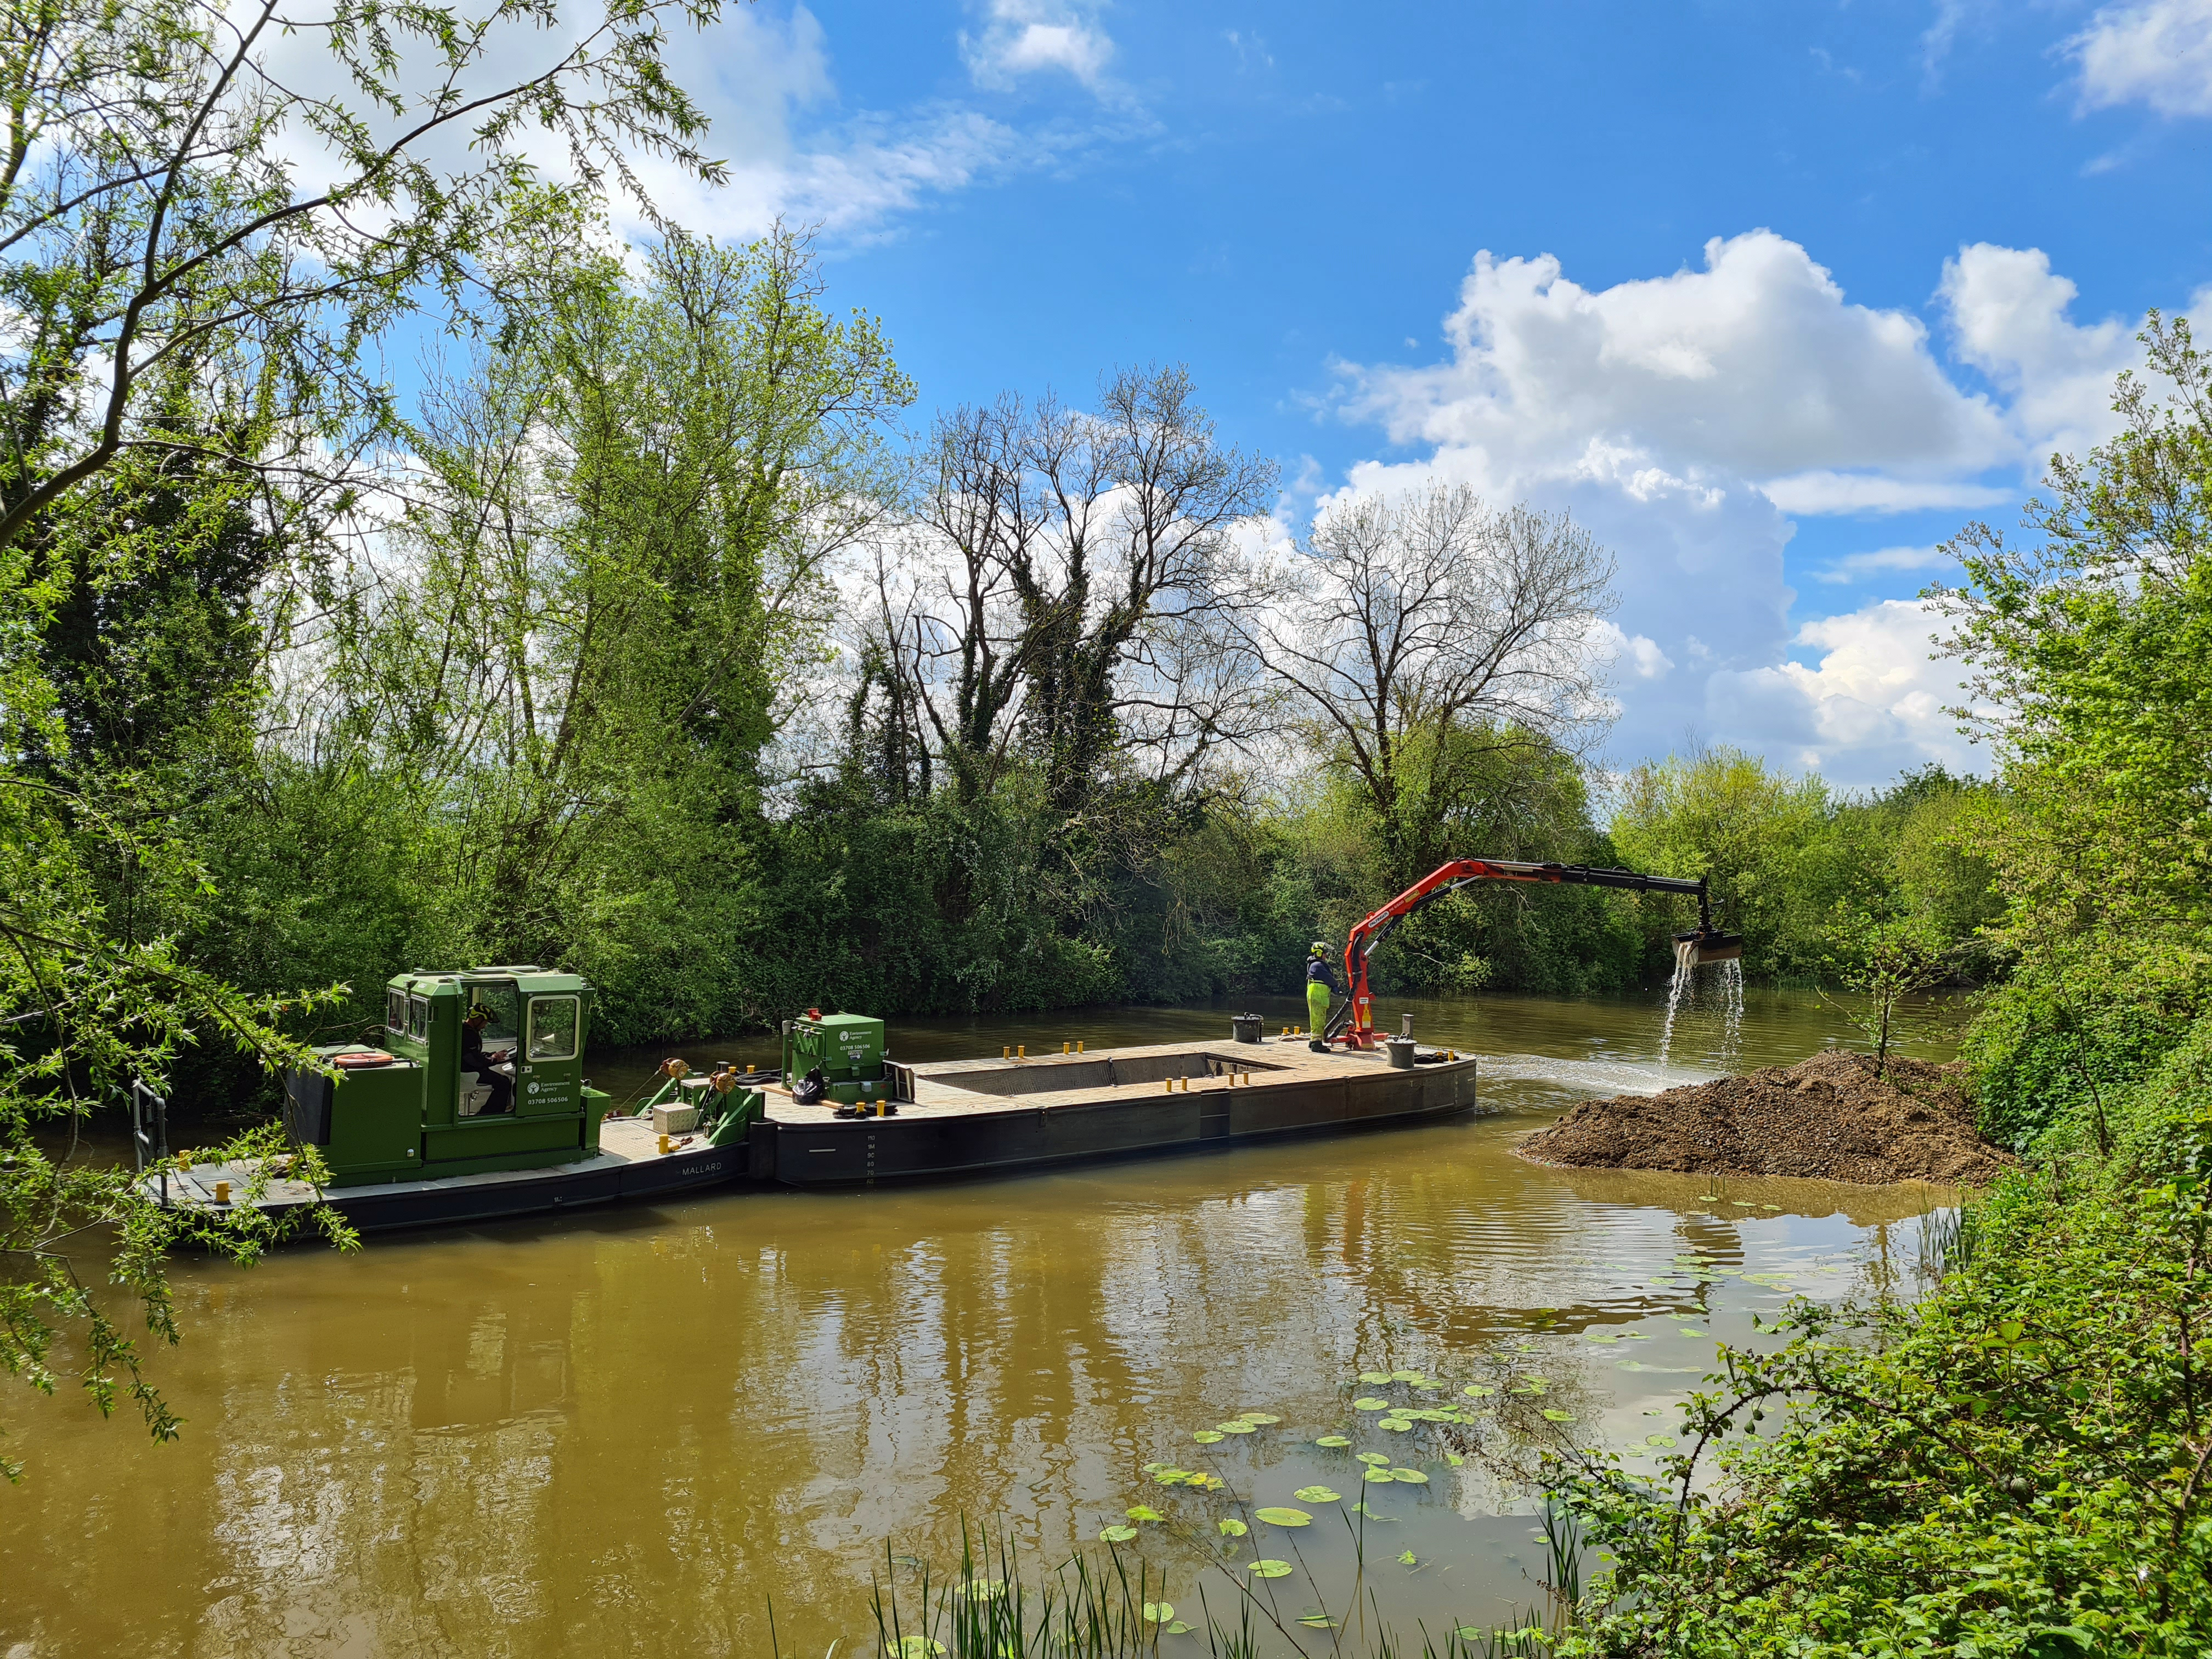 The River Medway is navigable all the way to Tonbridge and beyond. Dredging work was underway to ensure it stayed that way